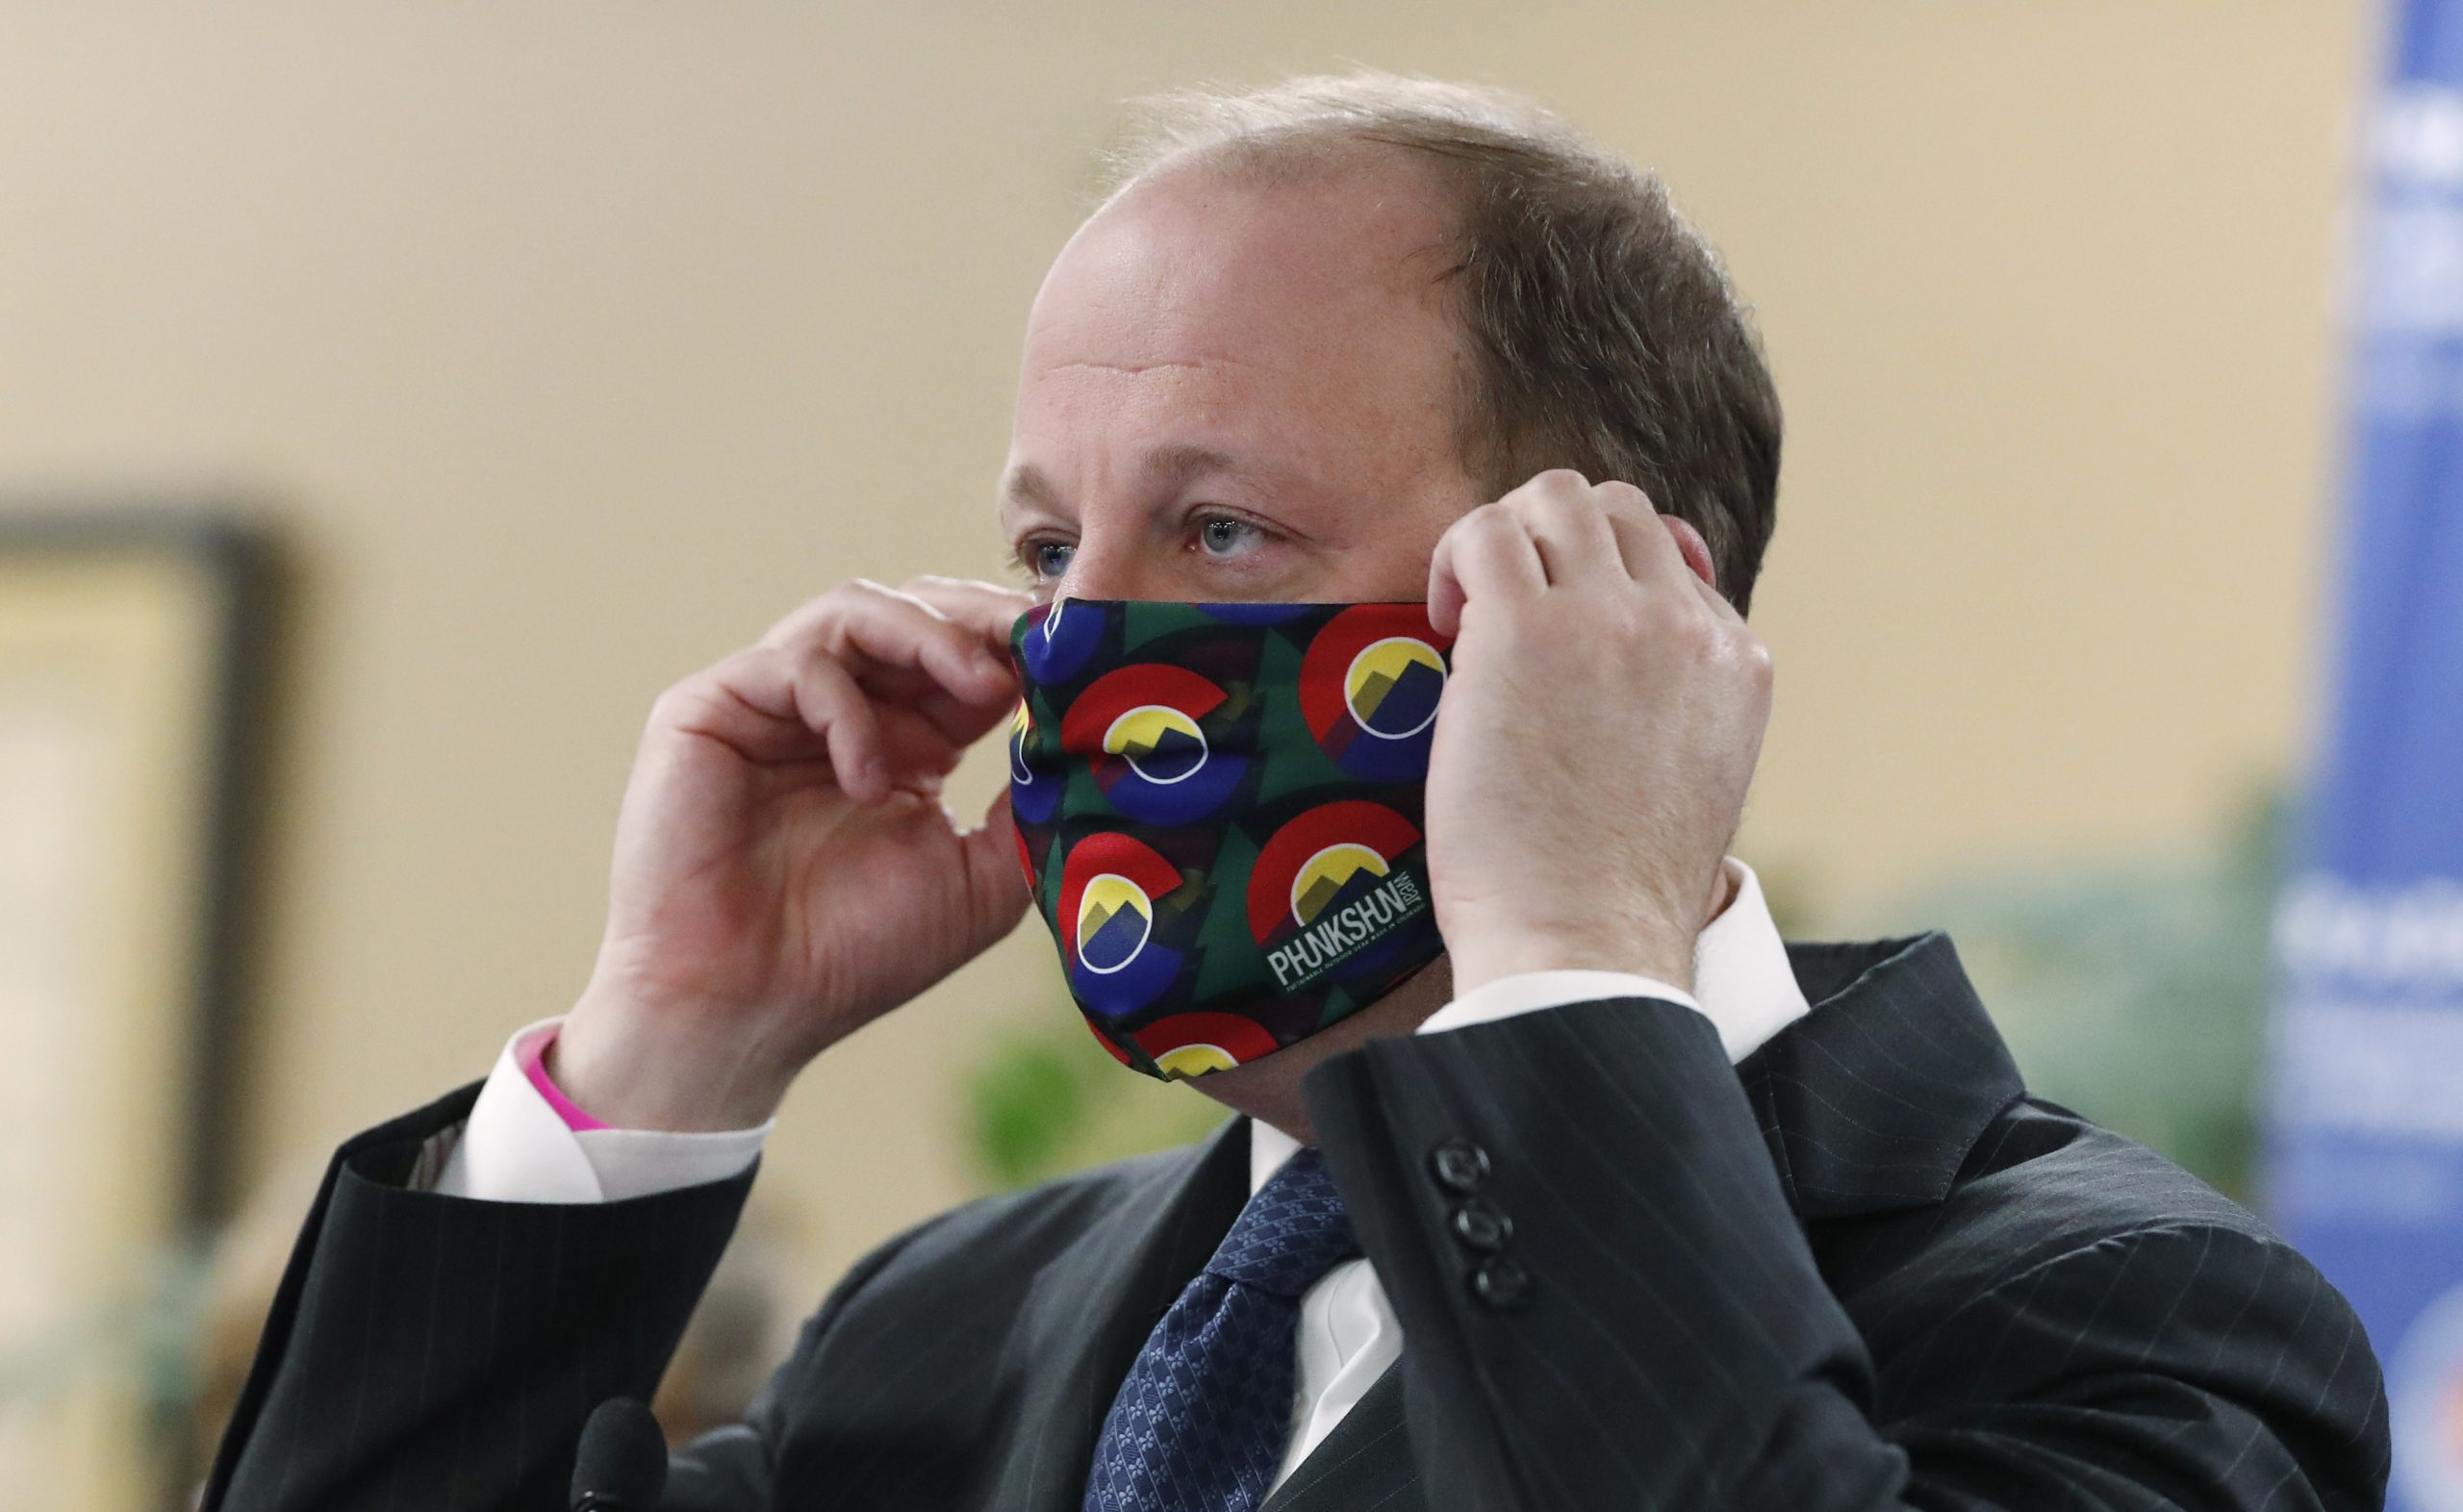 Colorado Governor Jared Polis dons a mask to encourage state residents to wear them while in public as a statewide stay-at-home order remains in effect in an effort to reduce the spread of the new coronavirus Friday, April 3, 2020, in Centennial, Colo.